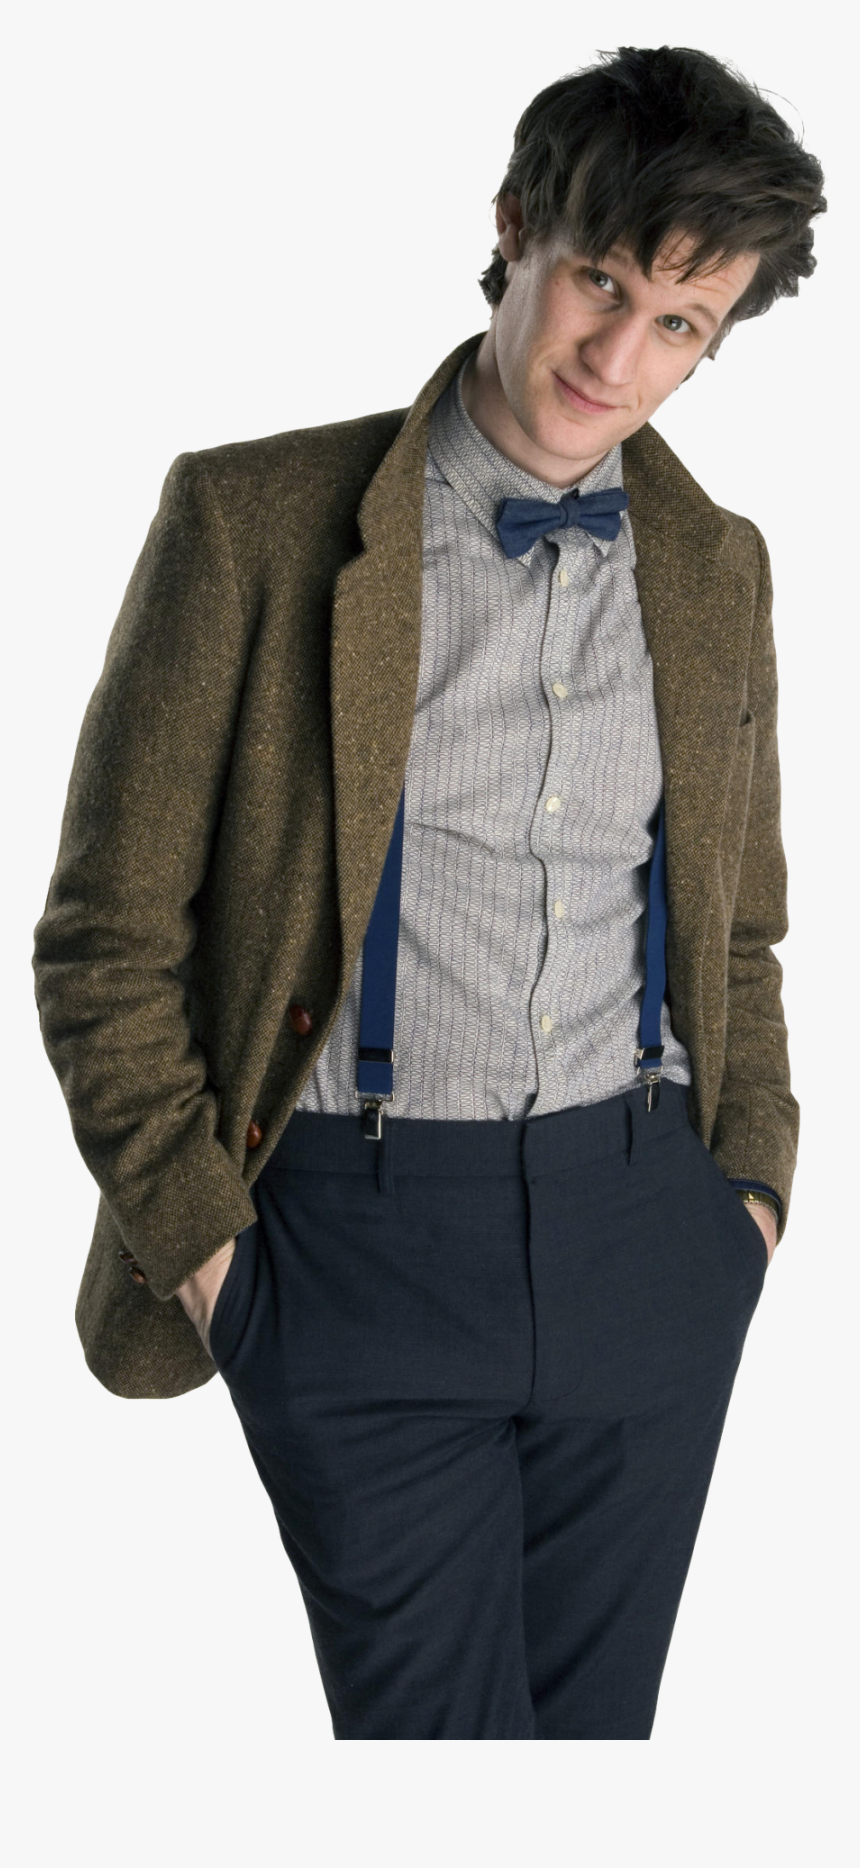 11th Doctor Series 5, HD Png Download, Free Download